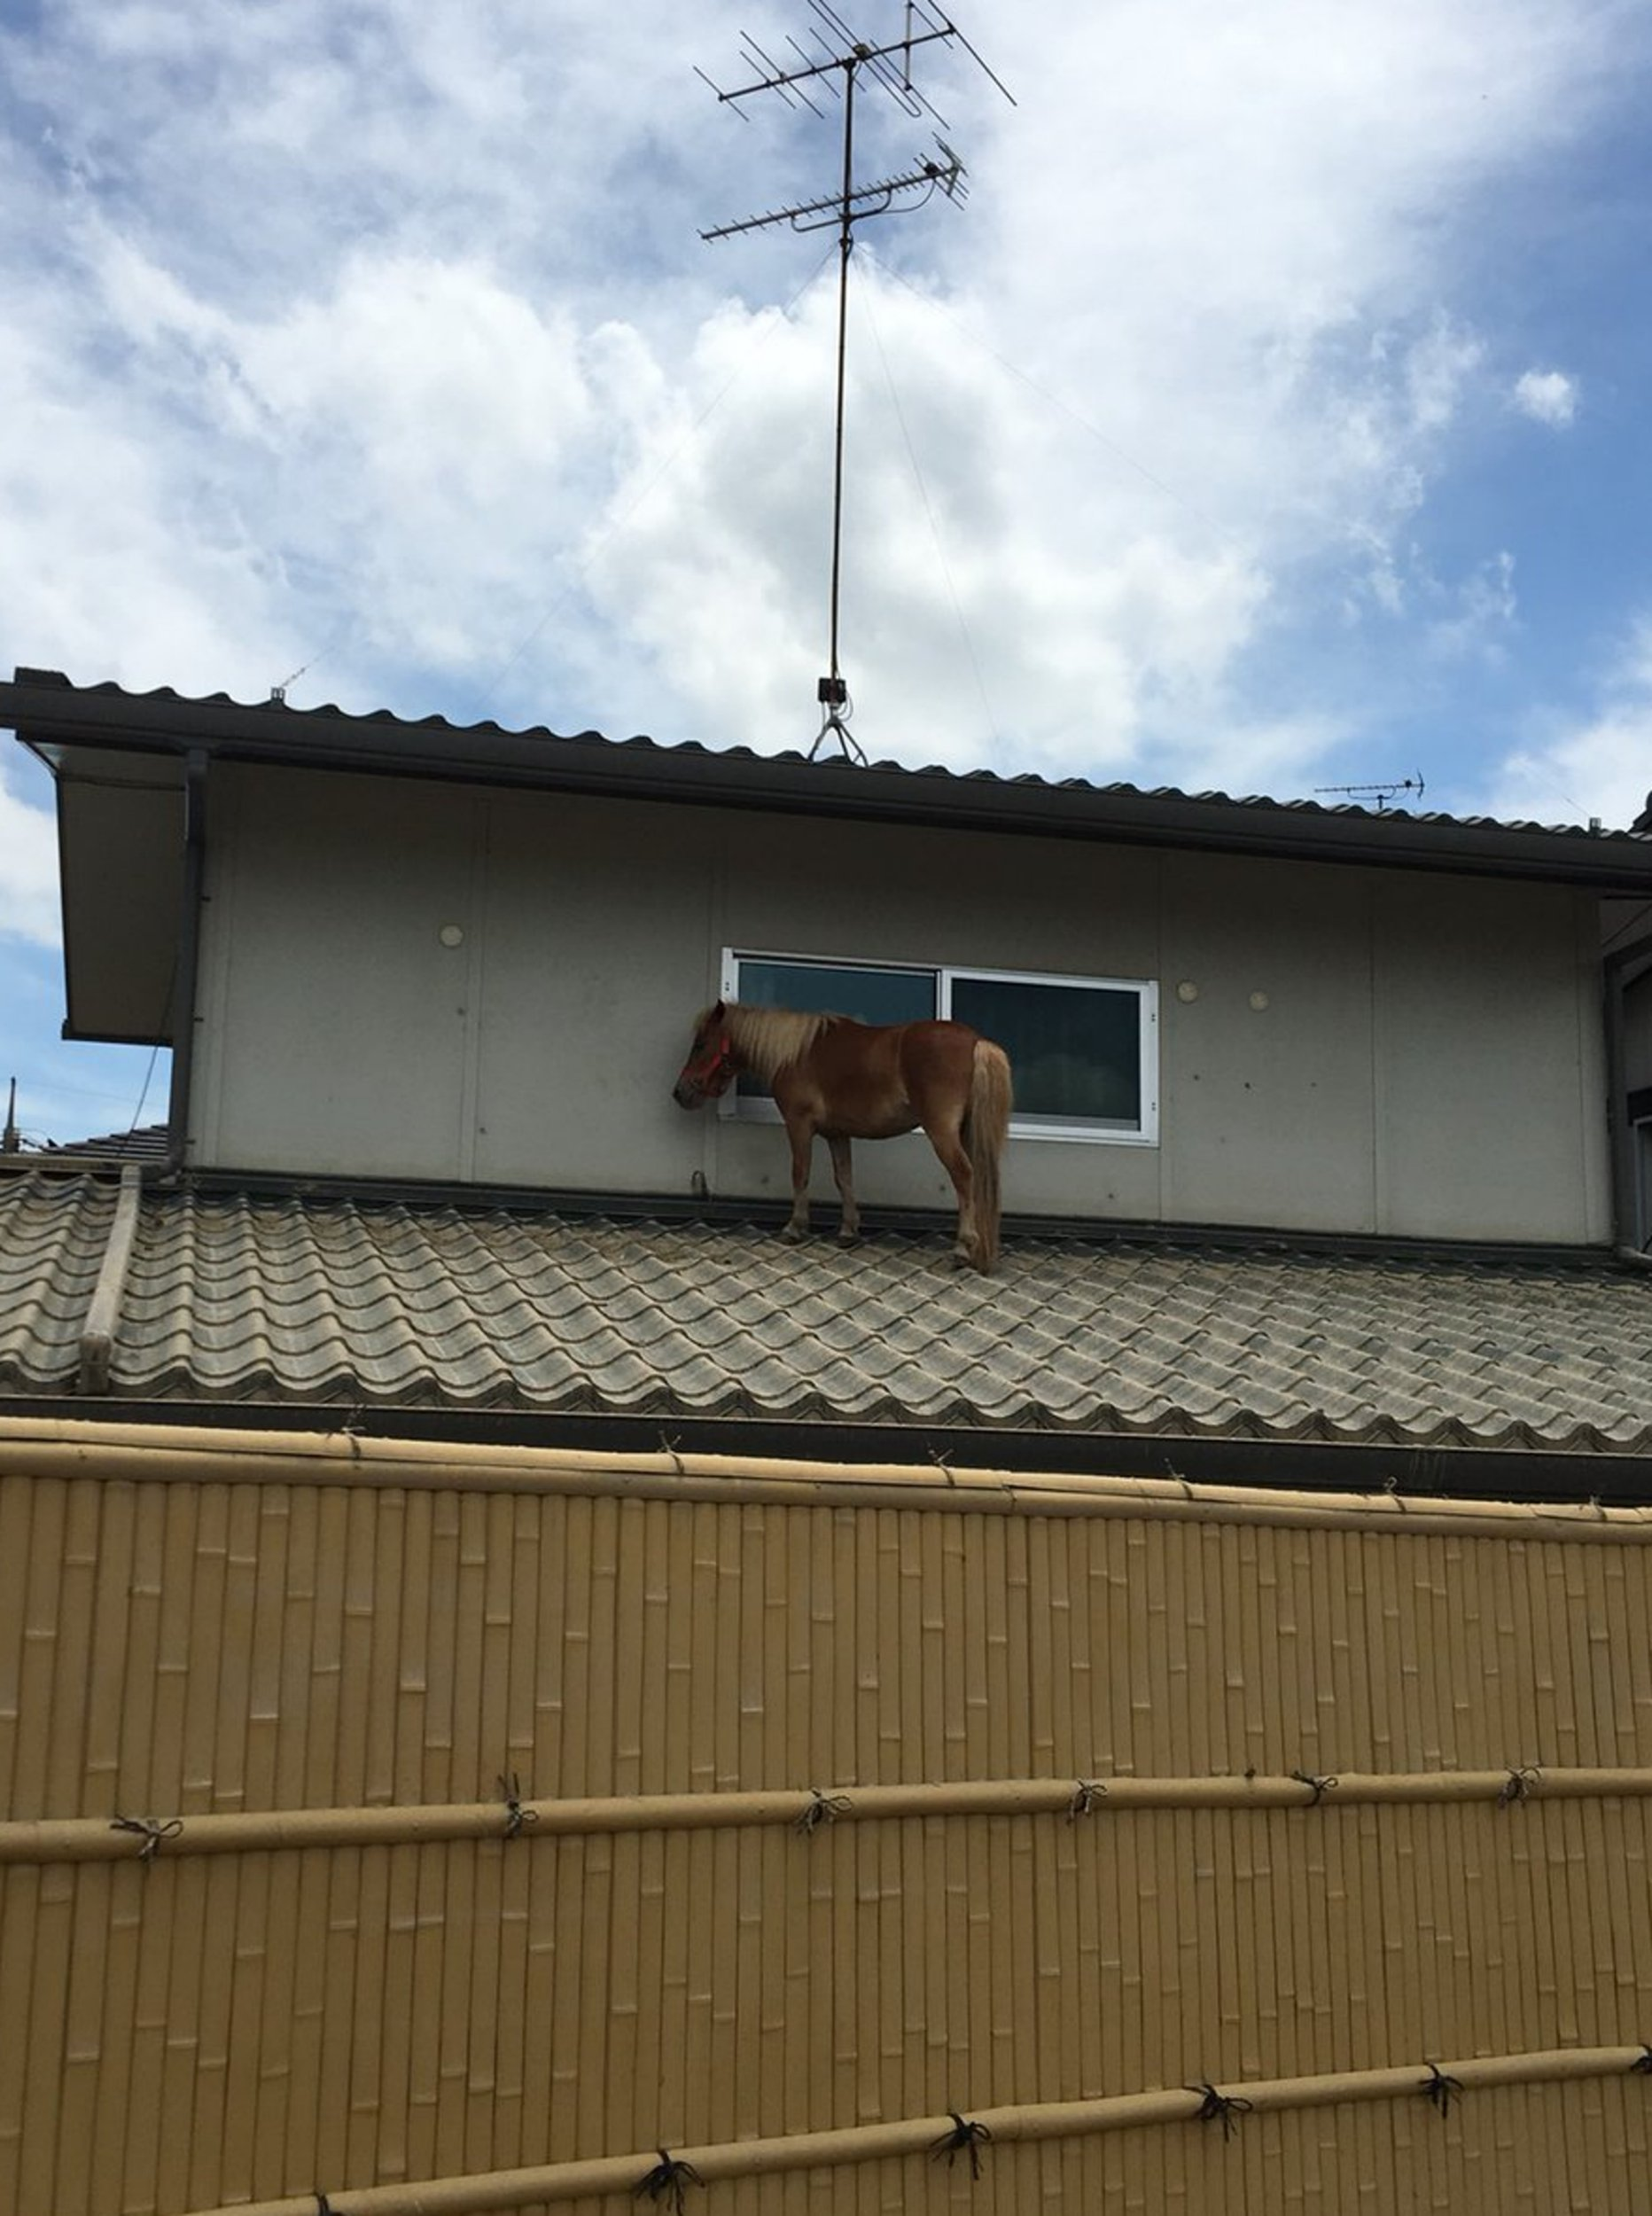 "Pic shows: Leaf was found standing on the roof of a house in Japan after the floods. Amid the scenes of devastation that saw large swathes of the country flooded the site of a miniature pony left trapped on a house roof after the waters receded has been welcomed. The miniature pony named Leaf is used as a therapy animal by the Life Town Mabi organisation that offers care for OAPs at its base in the town of Mabi, in southern Japan. The animal was swept away by floodwaters and last seen disappearing into a rain swollen river, leaving behind a flooded farm where she was looked after together with goats and other animals. Staff working at the centre feared that Leaf, who is a nine year-old-mare, had drowned. The fear was confirmed when they organised a search party in the area and turned up nothing. But then Mari Tanimoto, 49, who works at the organisation, said they got a call to say that Leaf had actually not gone far, and ending up on the roof of a house by the river. Covered in mud, she had also injured one of her legs but was otherwise unharmed. Residents meanwhile are baffled as to how she ended up there insisting that the water levels never reached high enough to leave her on the roof. Getting her down off the roof also posed a problem, and they fed her carrots in order to keep her calm while they devised a strategy that eventually involved bringing her in through a window. Tanimoto said despite the difficulties she was so happy to see the tiny horse that she cried when they were reunited. Another centre worker Masayuki Yoshida, 48, said: ""I thought that she was already dead, but luckily she seems to have survived on the roof."""